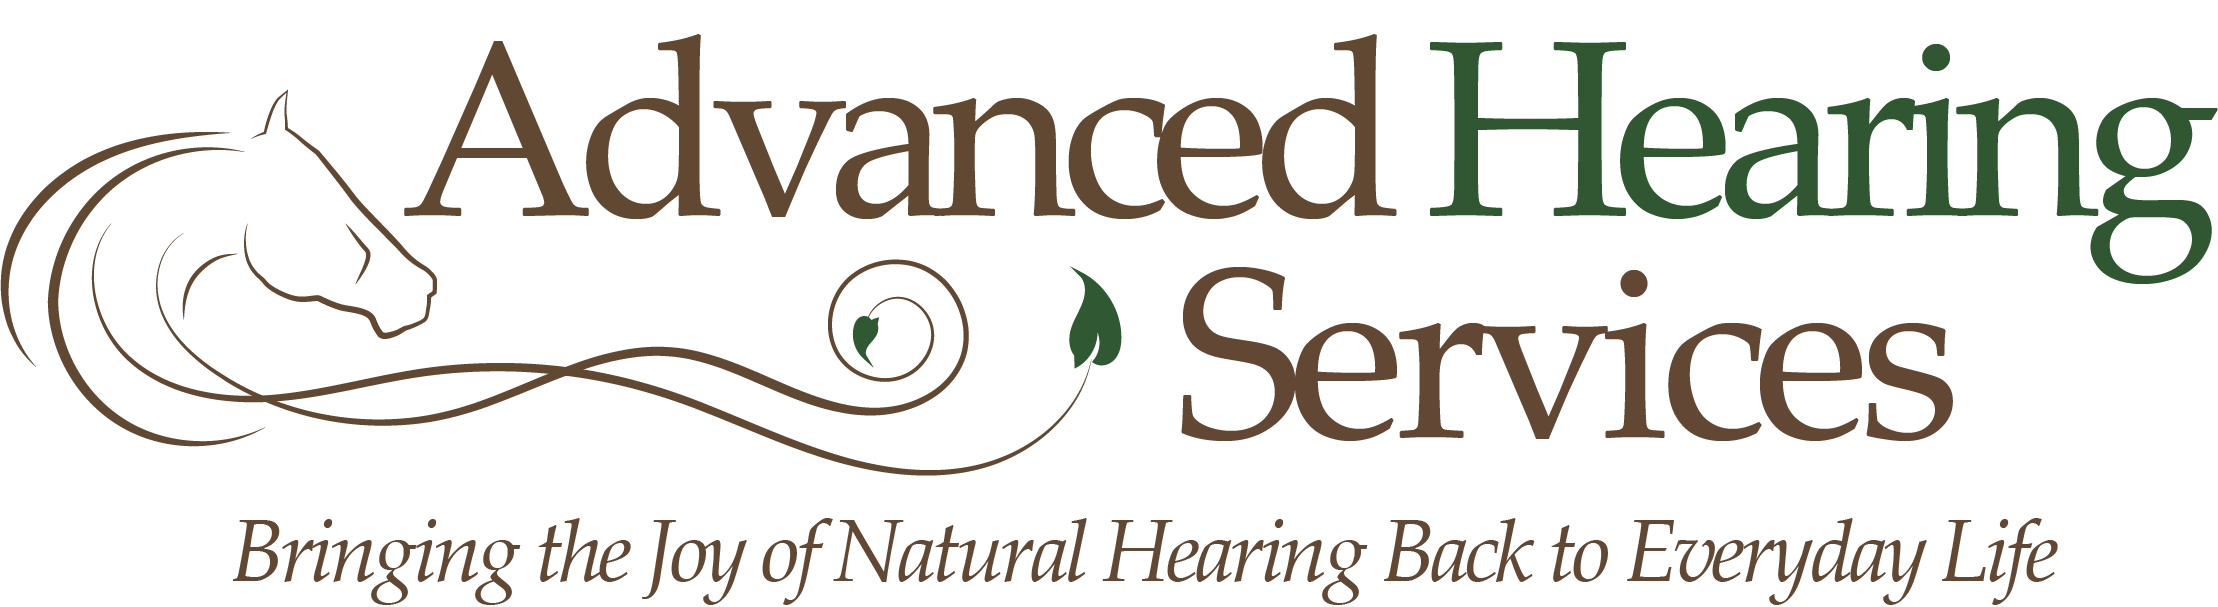 Advanced Hearing Services LLC